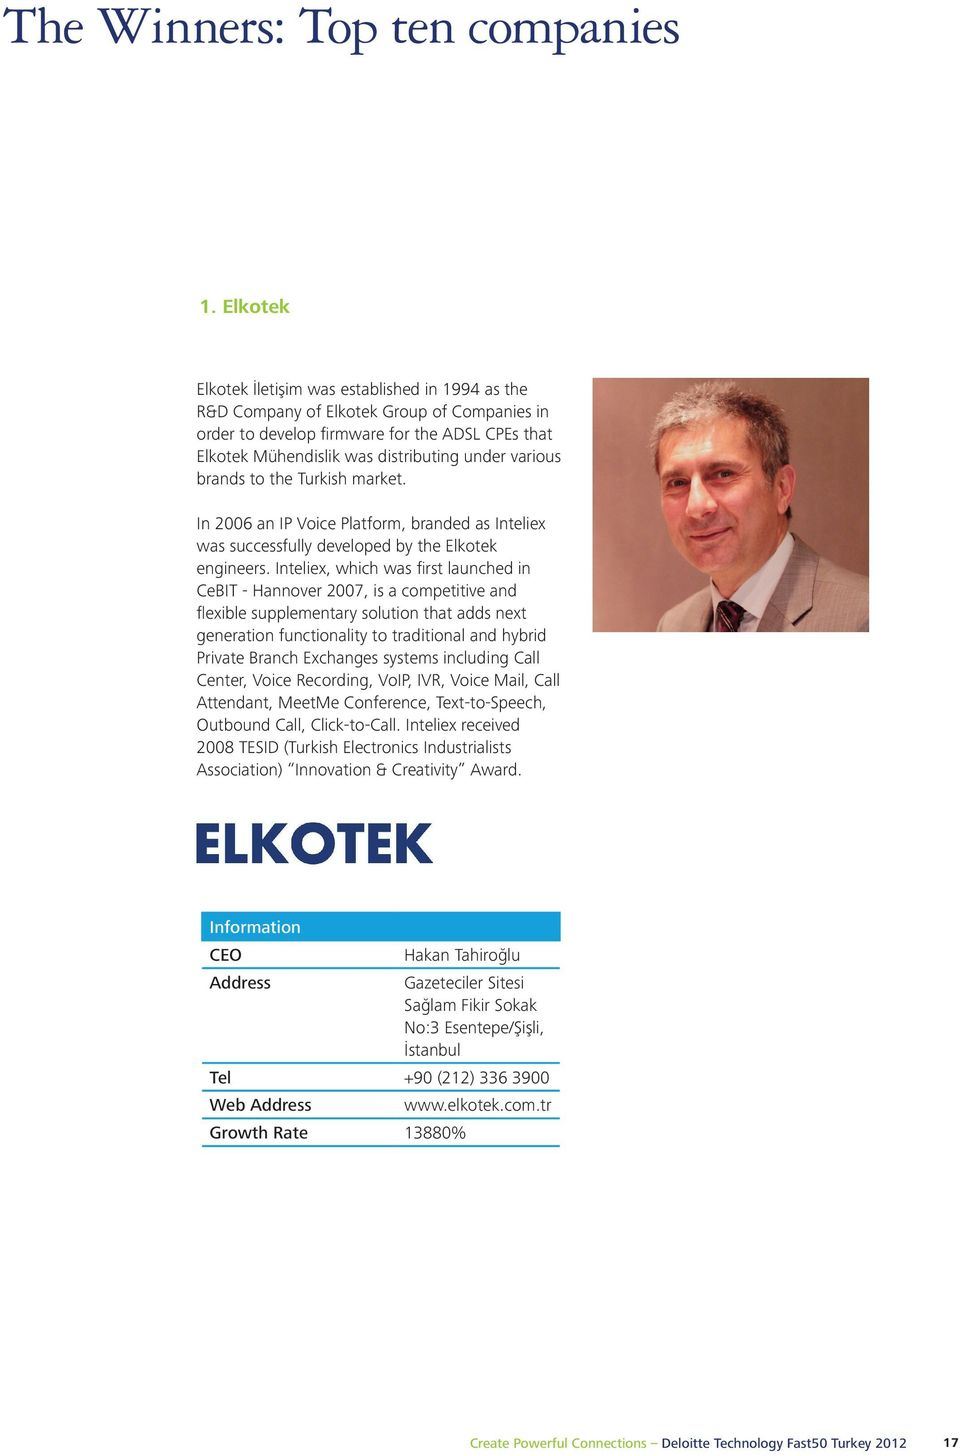 various brands to the Turkish market. In 2006 an IP Voice Platform, branded as Inteliex was successfully developed by the Elkotek engineers.